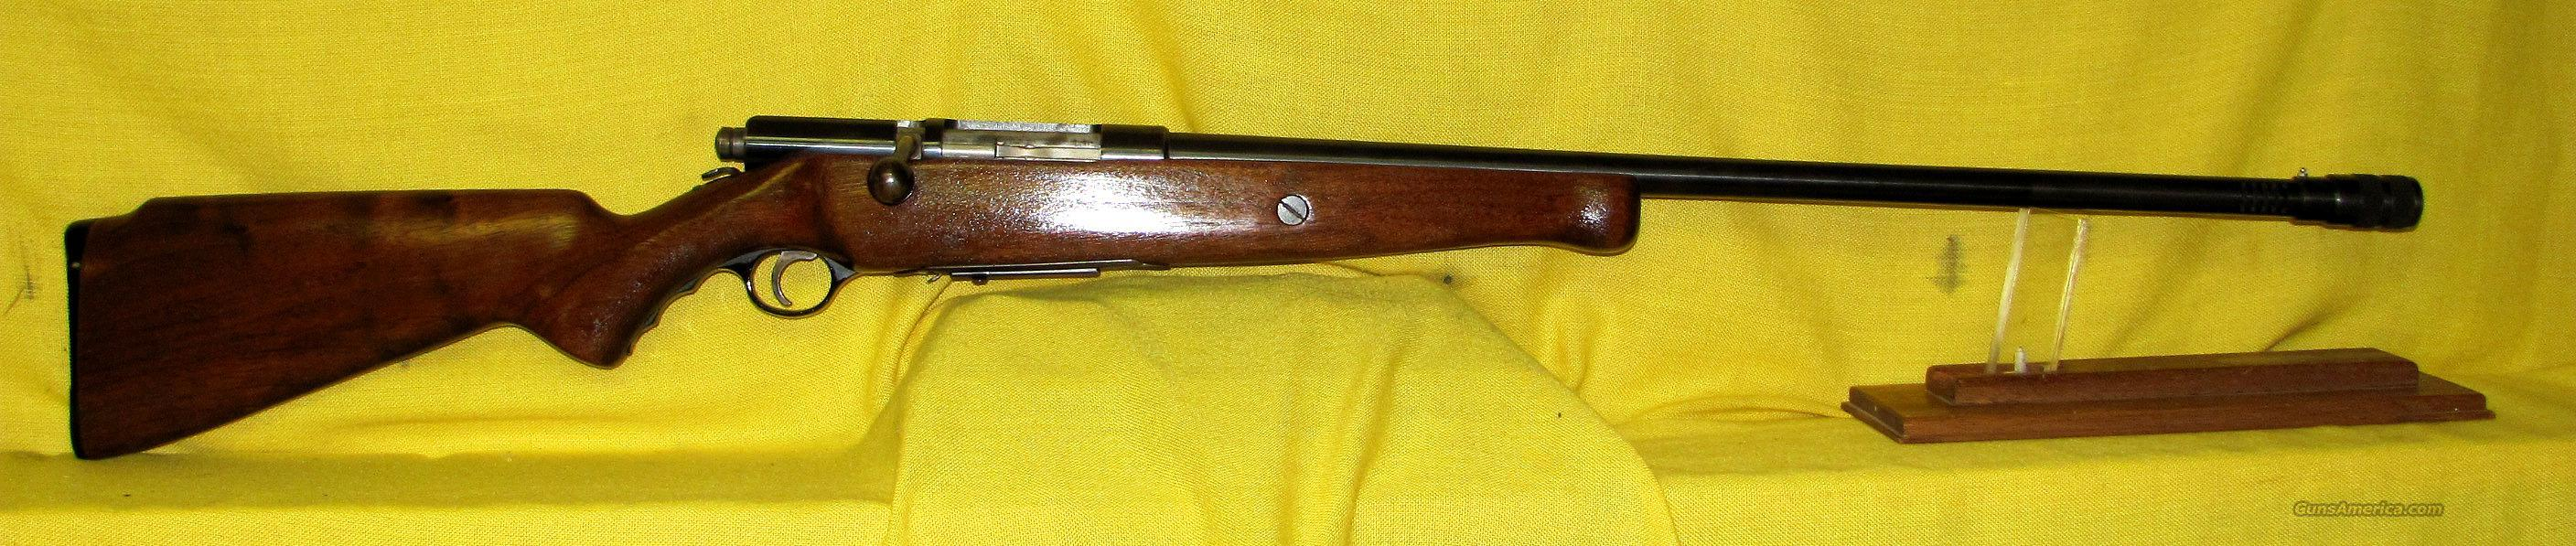 "MOSSBERG 185K BOLT 20GA  26"" BARREL  Guns > Shotguns > Mossberg Shotguns > Autoloaders"